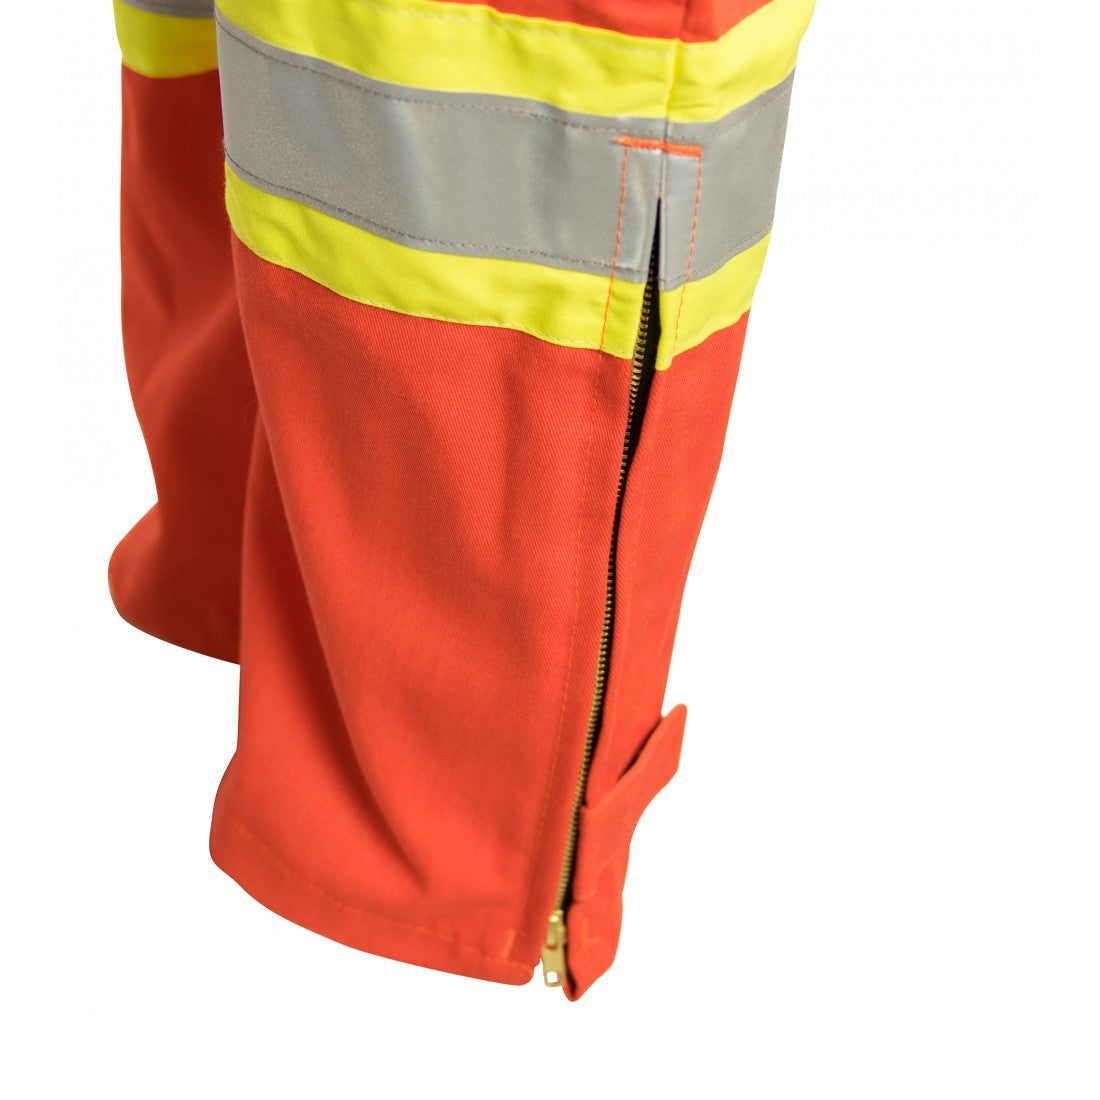 KELTEK 364S Flame Resistant Unlined CSA Bib Overall | Orange | S-5XL (HRC 2) Flame Resistant Work Wear - Cleanflow